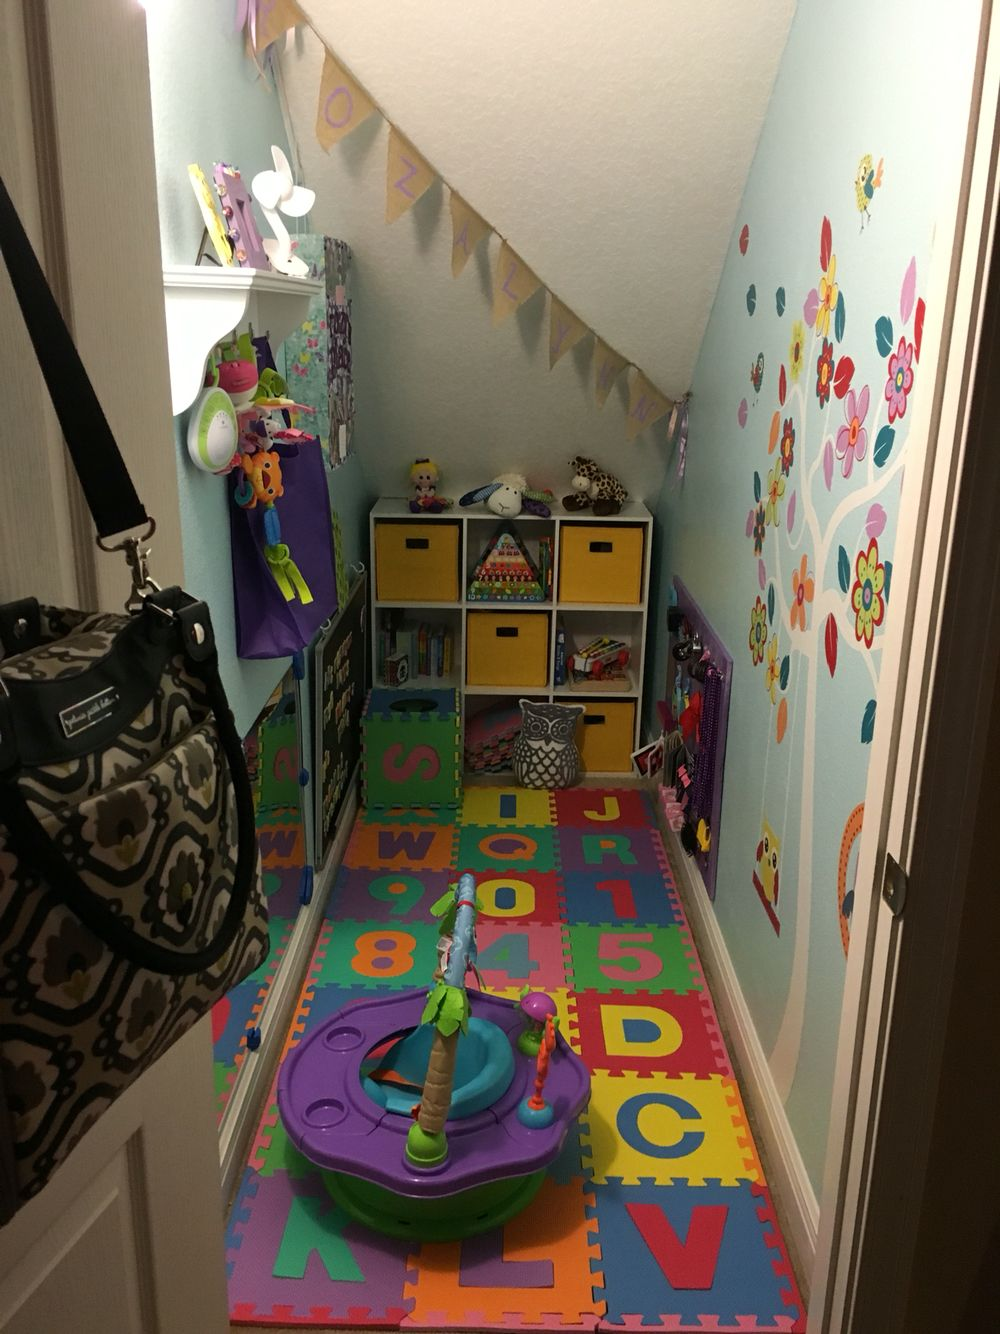 Baby Playroom Ideas baby playroom made from closet under stairs | rozalynn | pinterest